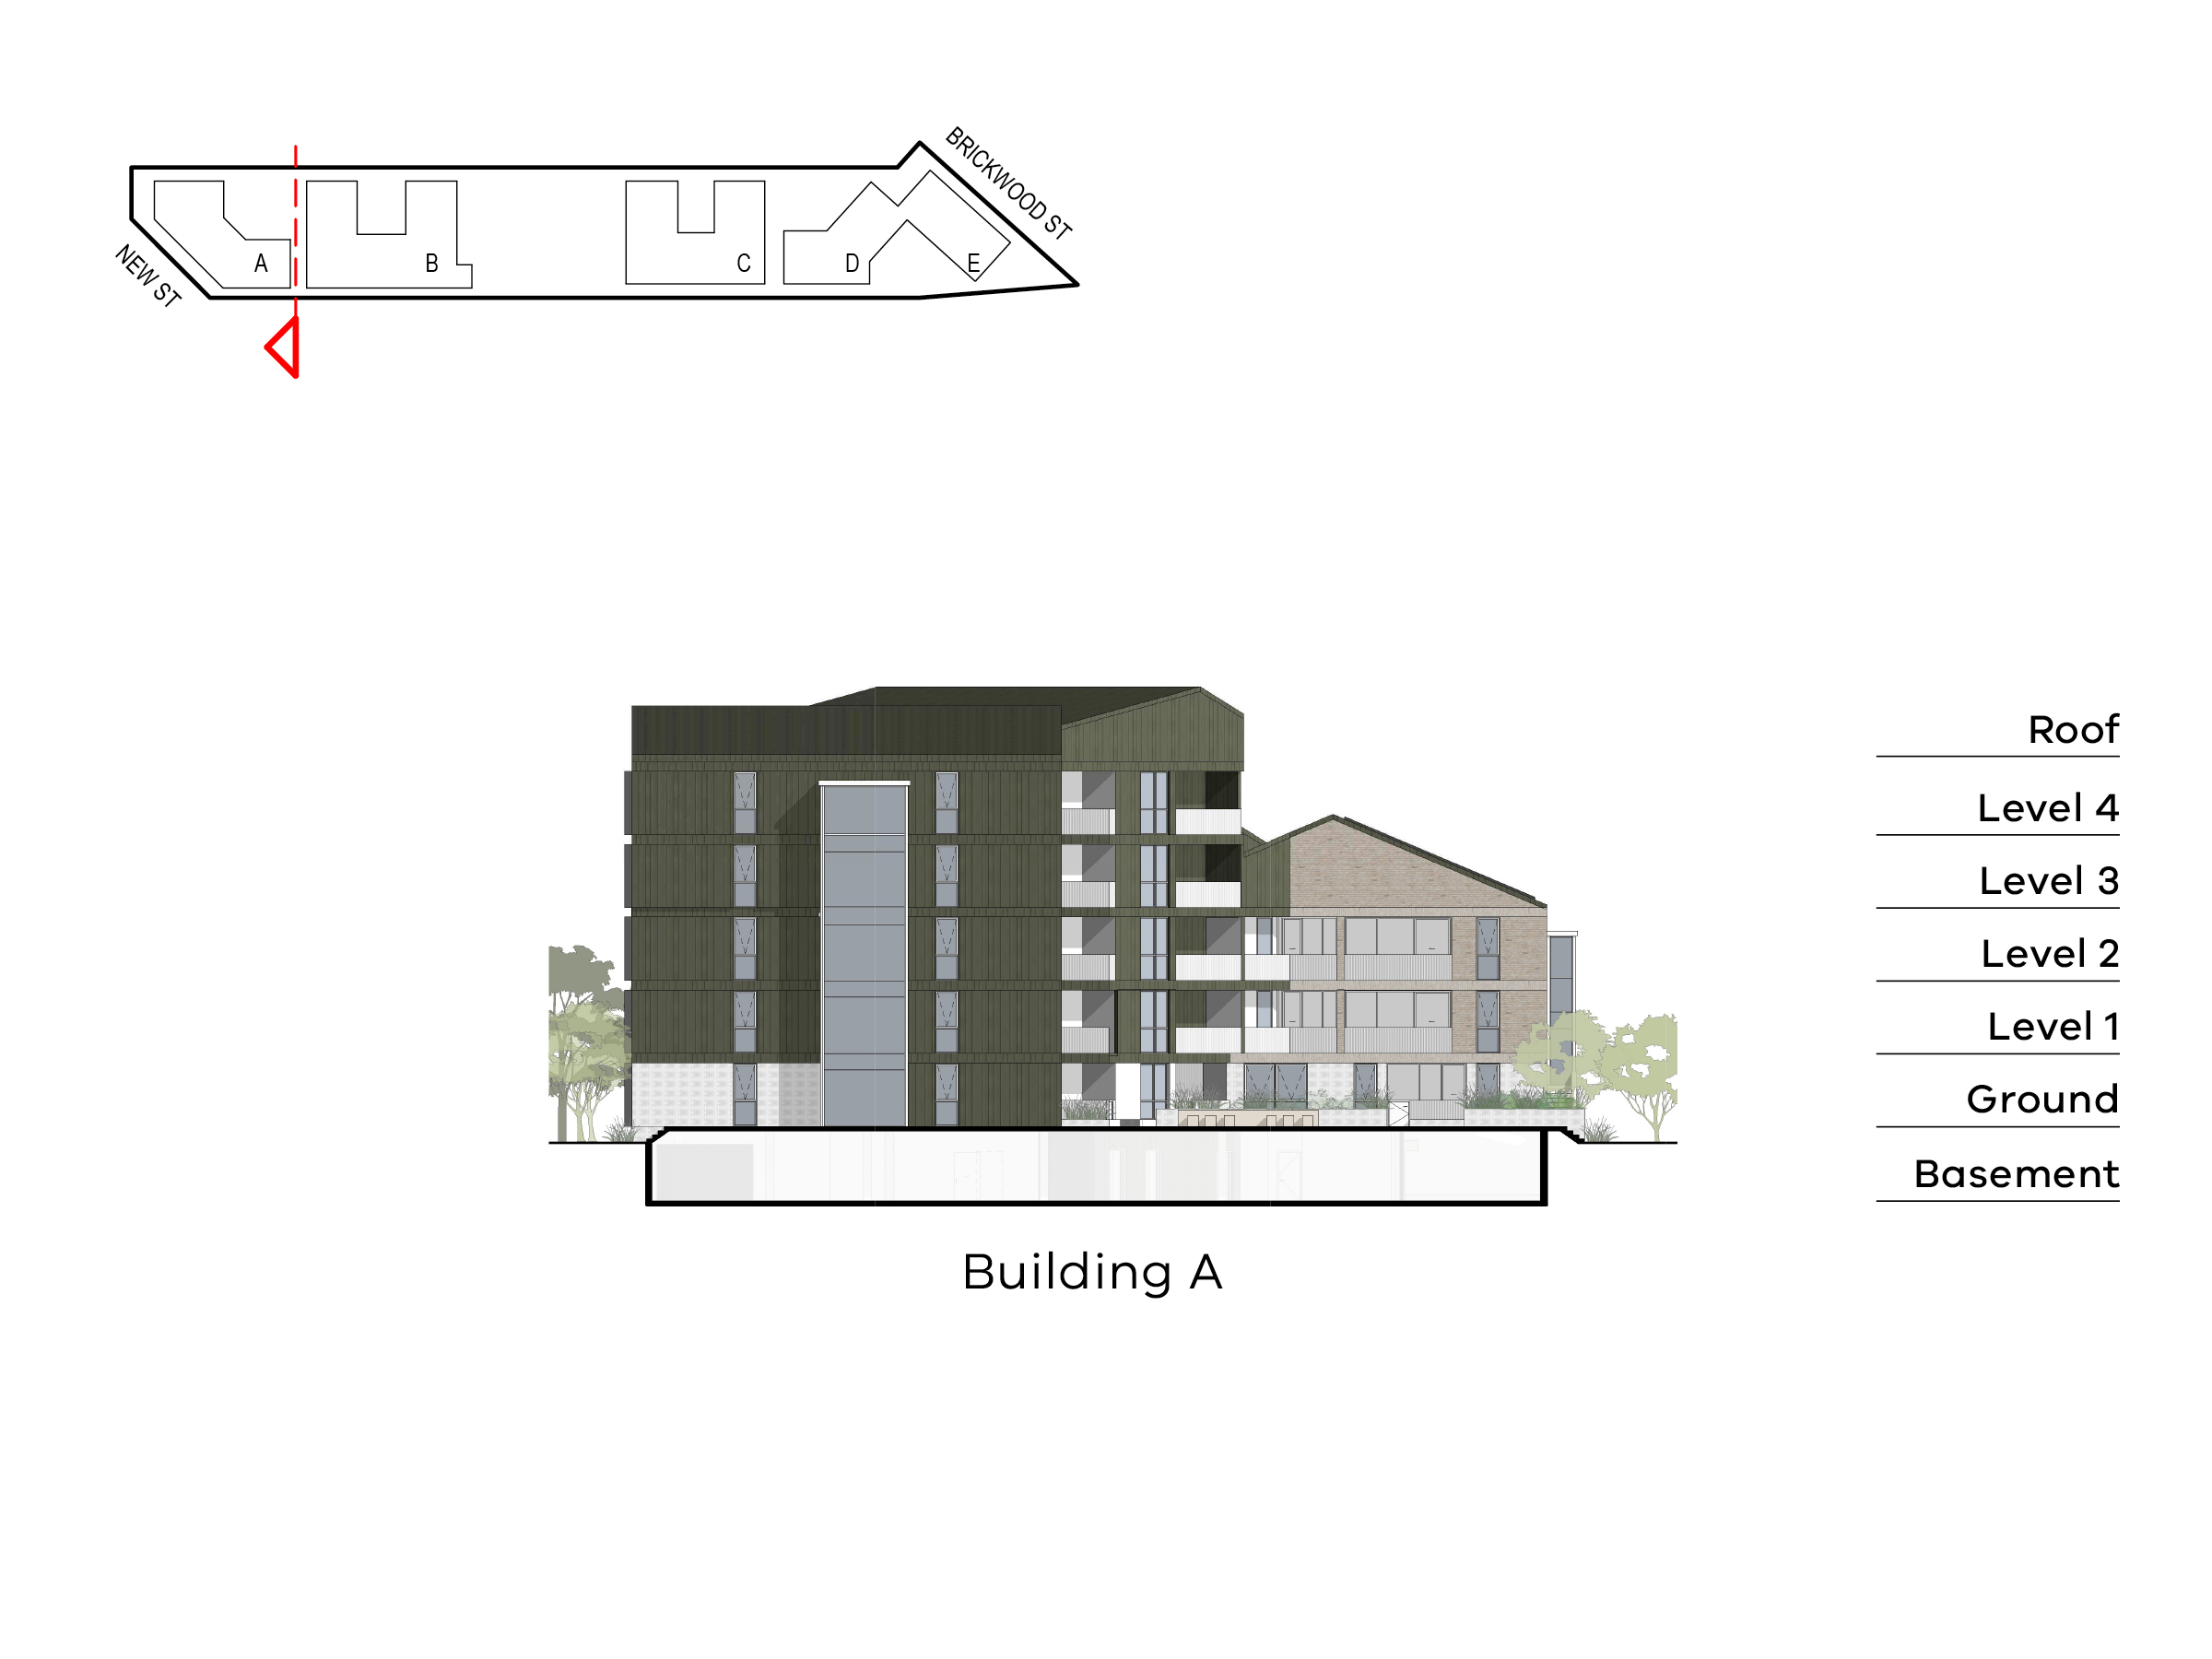 Diagram showing the height of building A as seen from building B towards New Street. Building A includes a basement, ground floor, level 1-4 and a roof on the Elster Creek side and basement, ground floor, level 1-2 and a roof on the Ebden Street side